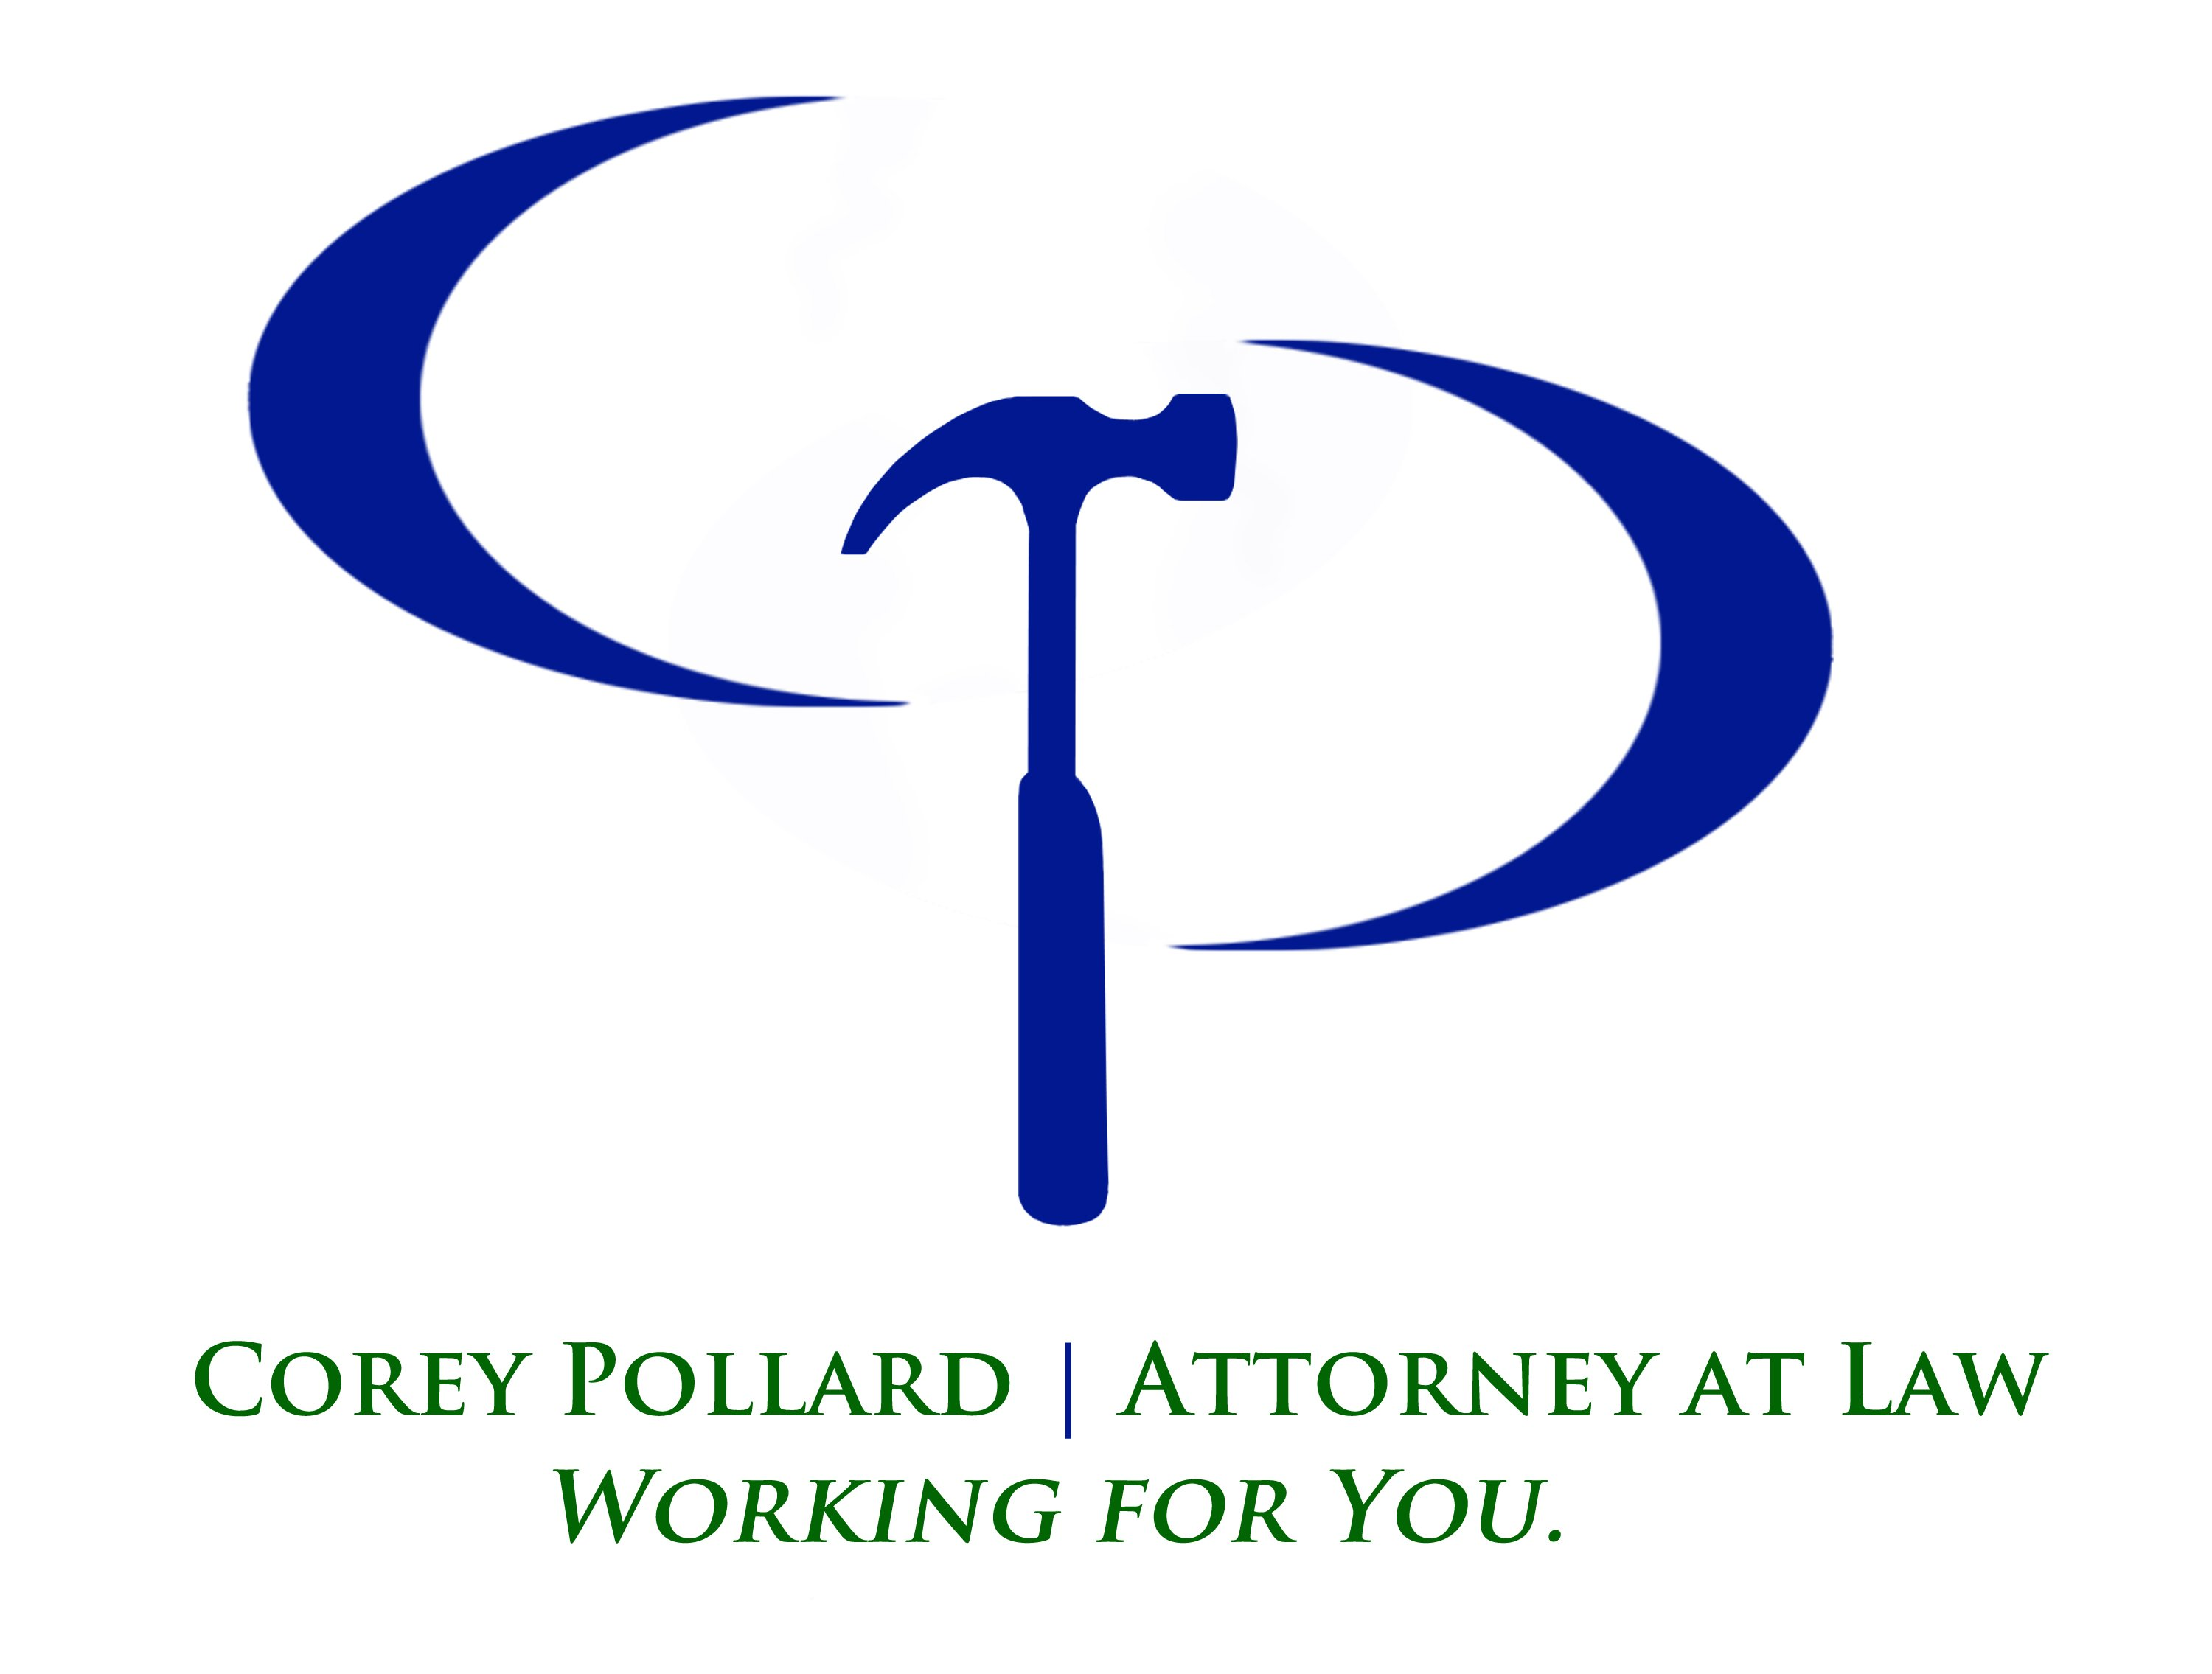 Vocational rehabilitation through workers compensation in virginia fc6aa09d1bbe1487204684 pollard logo finalg xflitez Image collections